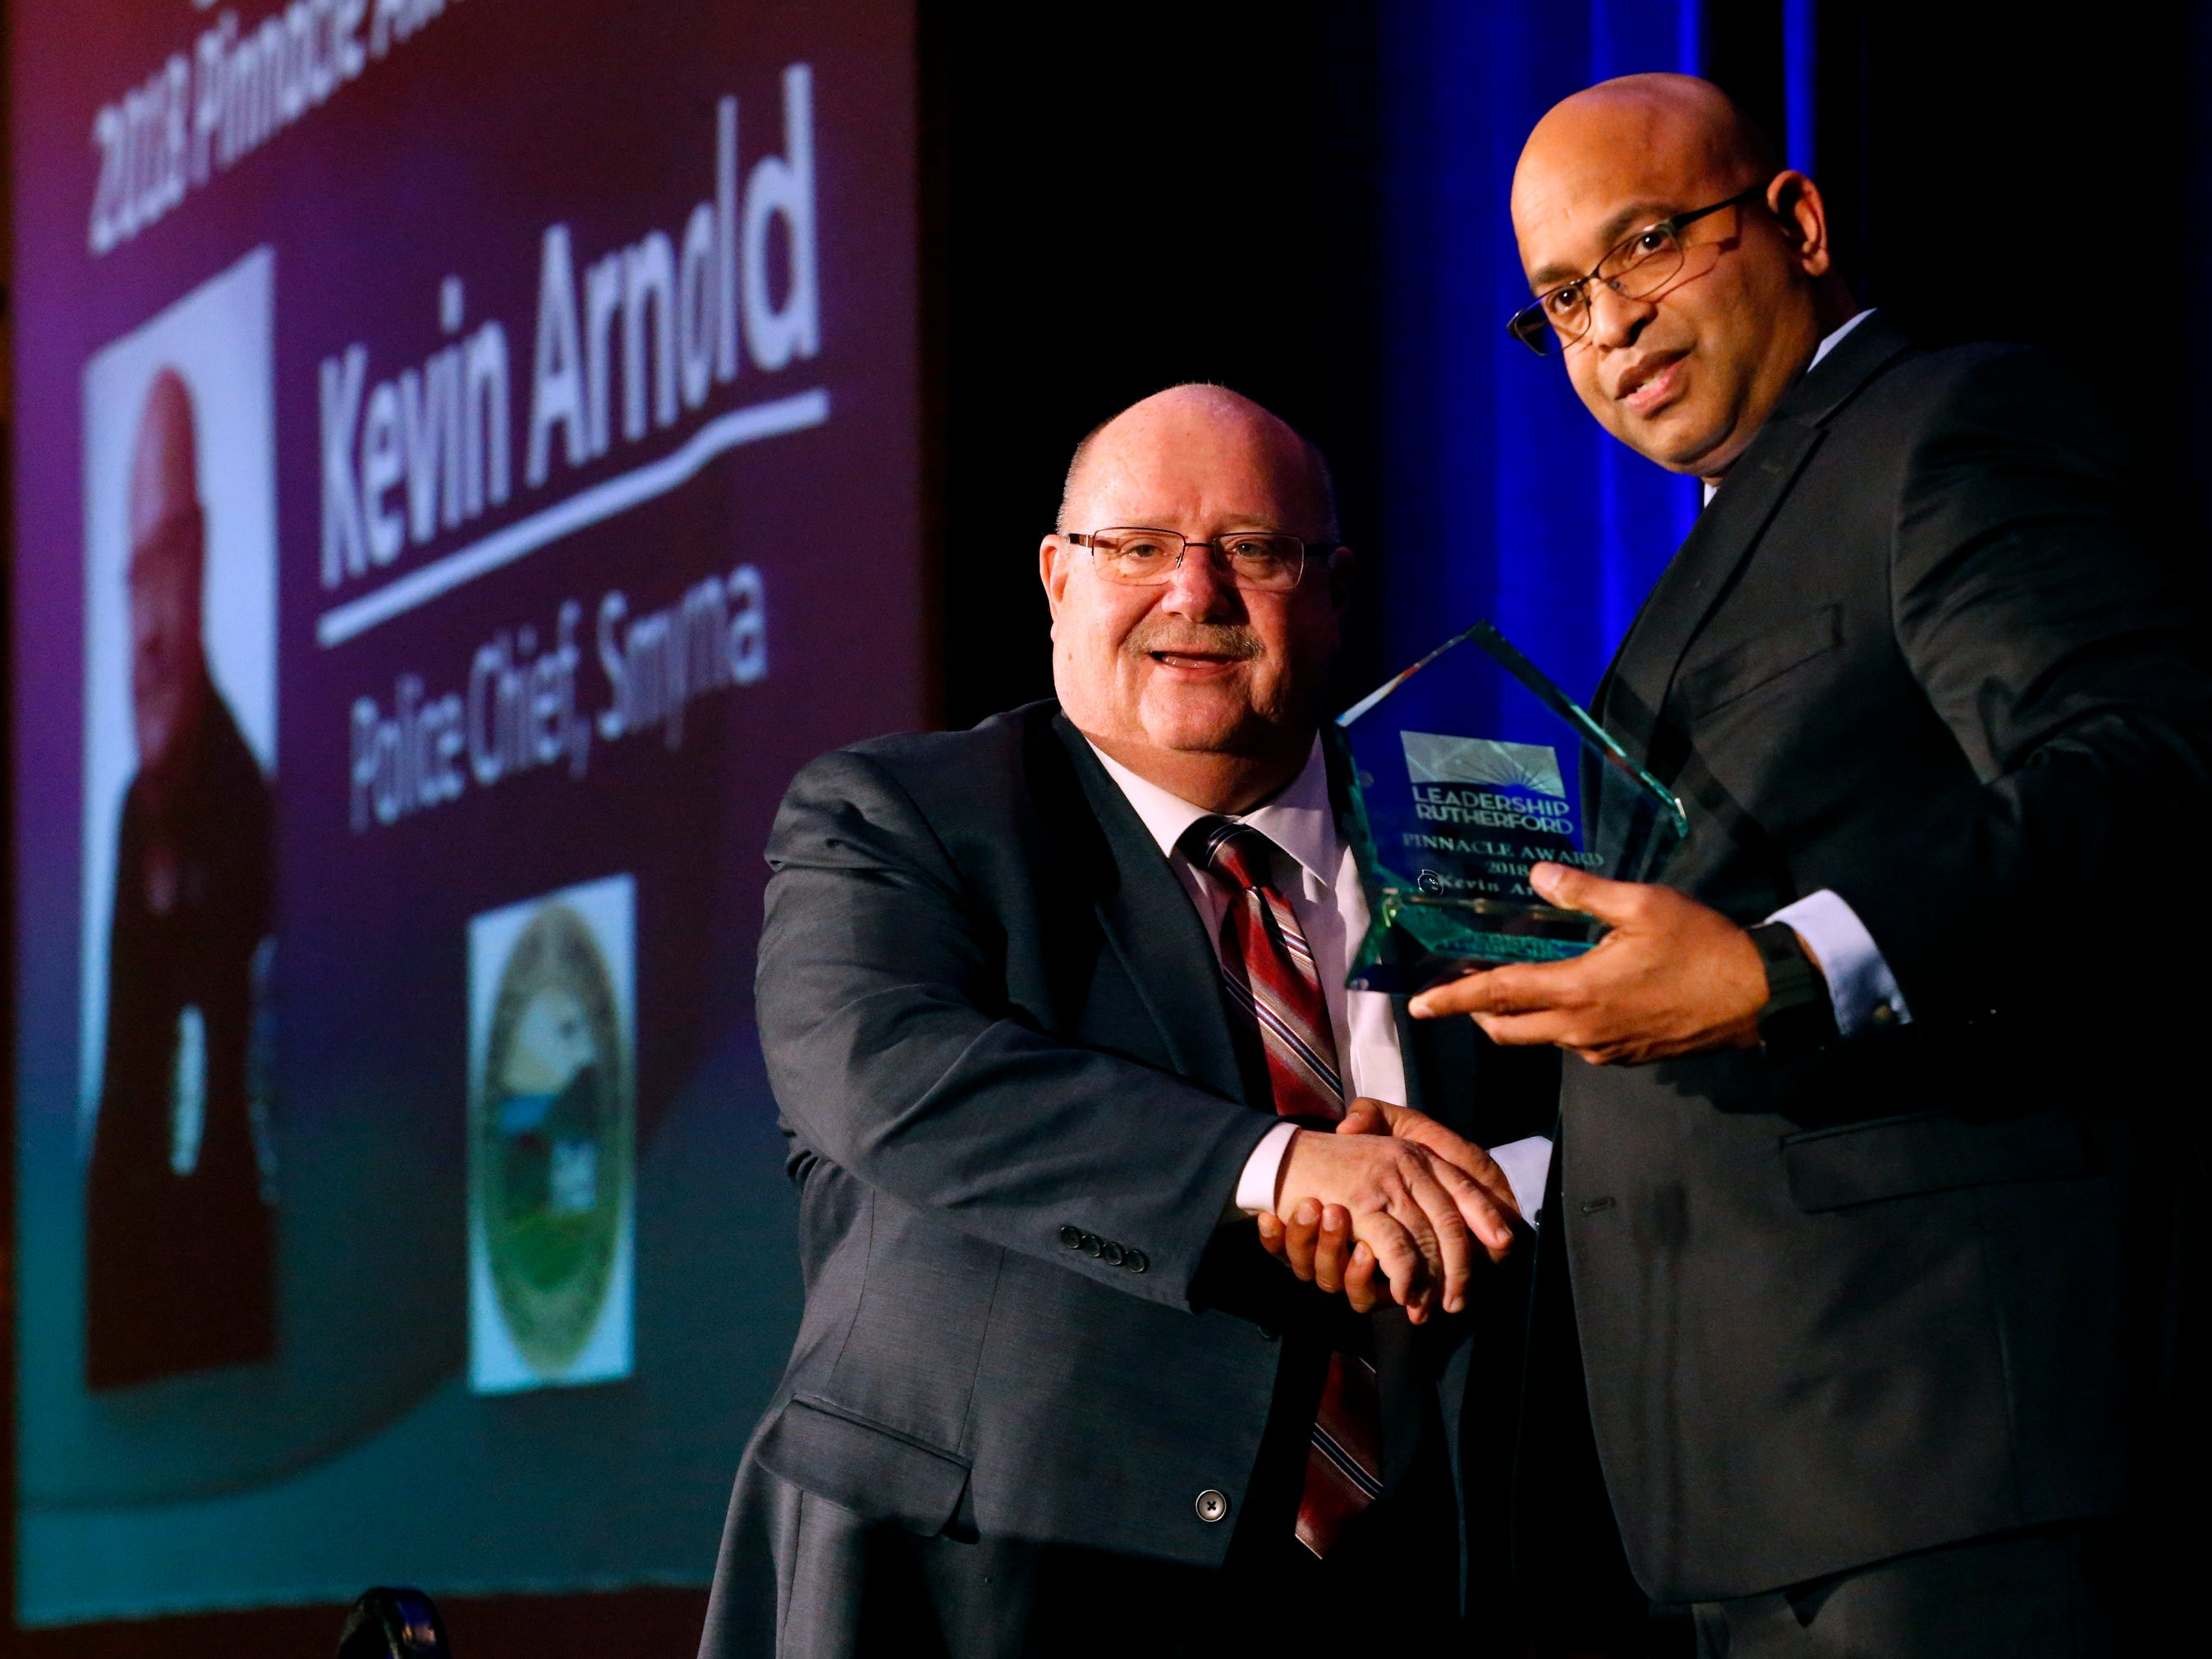 Dane Appalsammy, left presented this year's Leadership Rutherford Pinnacle Award to Chief Kevin Arnold, right at Business at Its Best that was held on Wednesday, Jan. 31, 2019 at Embassy Suites.